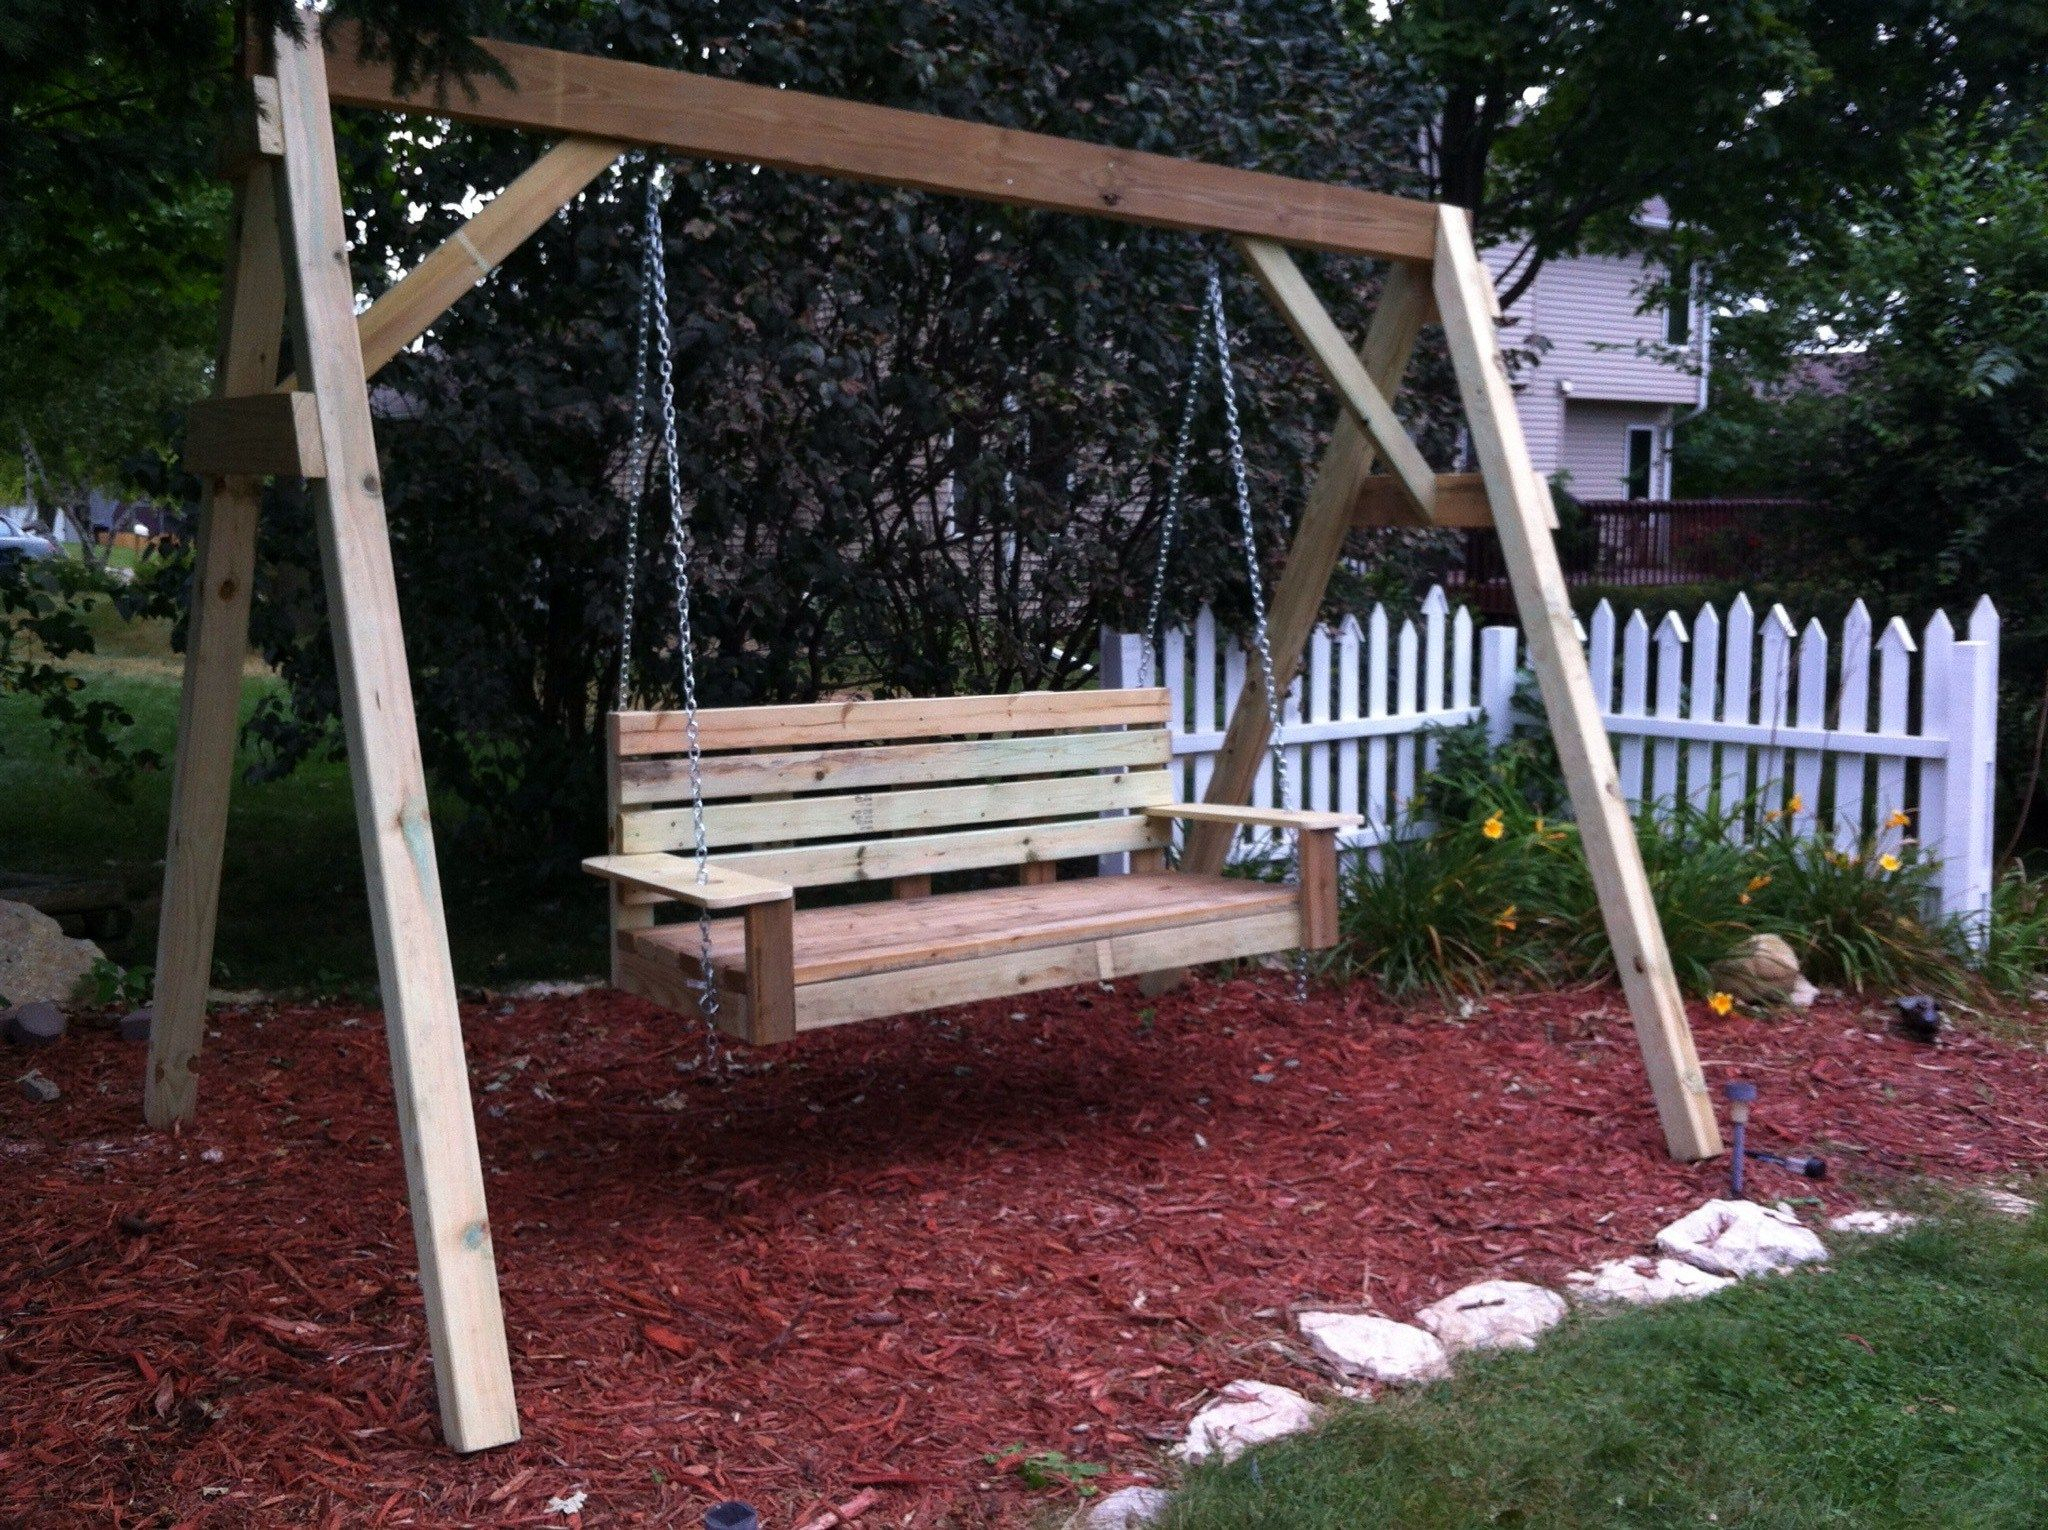 Build Diy How To Build A Frame Porch Swing Stand Pdf Plans Regarding Porch Swings With Stand (View 13 of 25)